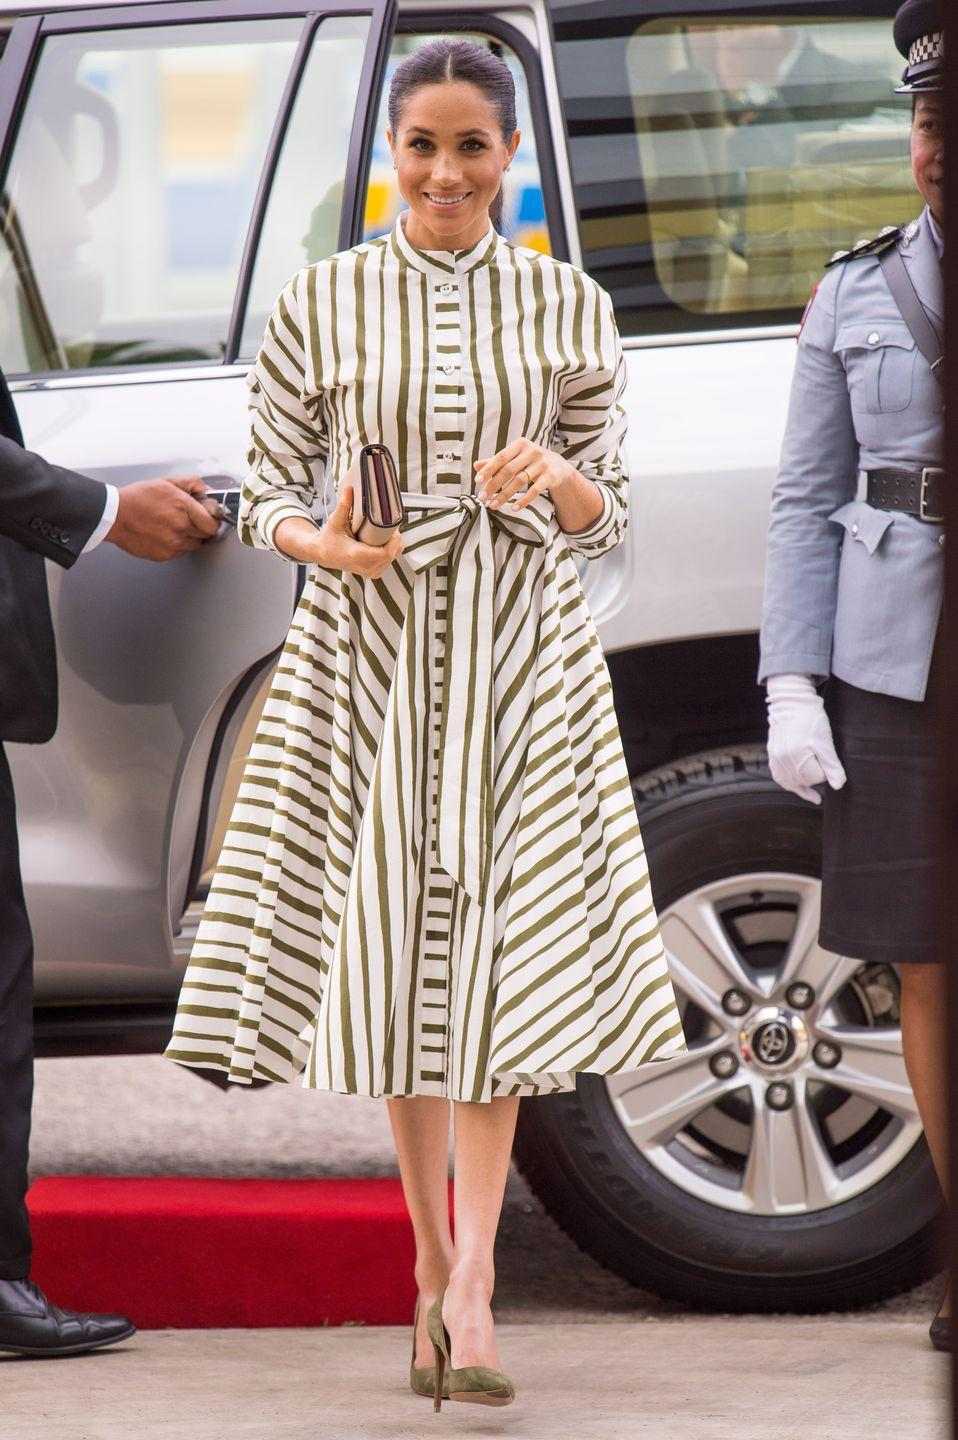 <p>Meghan kicked off her second day in Tonga wearing a striped dress by Martin Grant. She finished her outfit off with a clutch by Prada and green heels. </p>